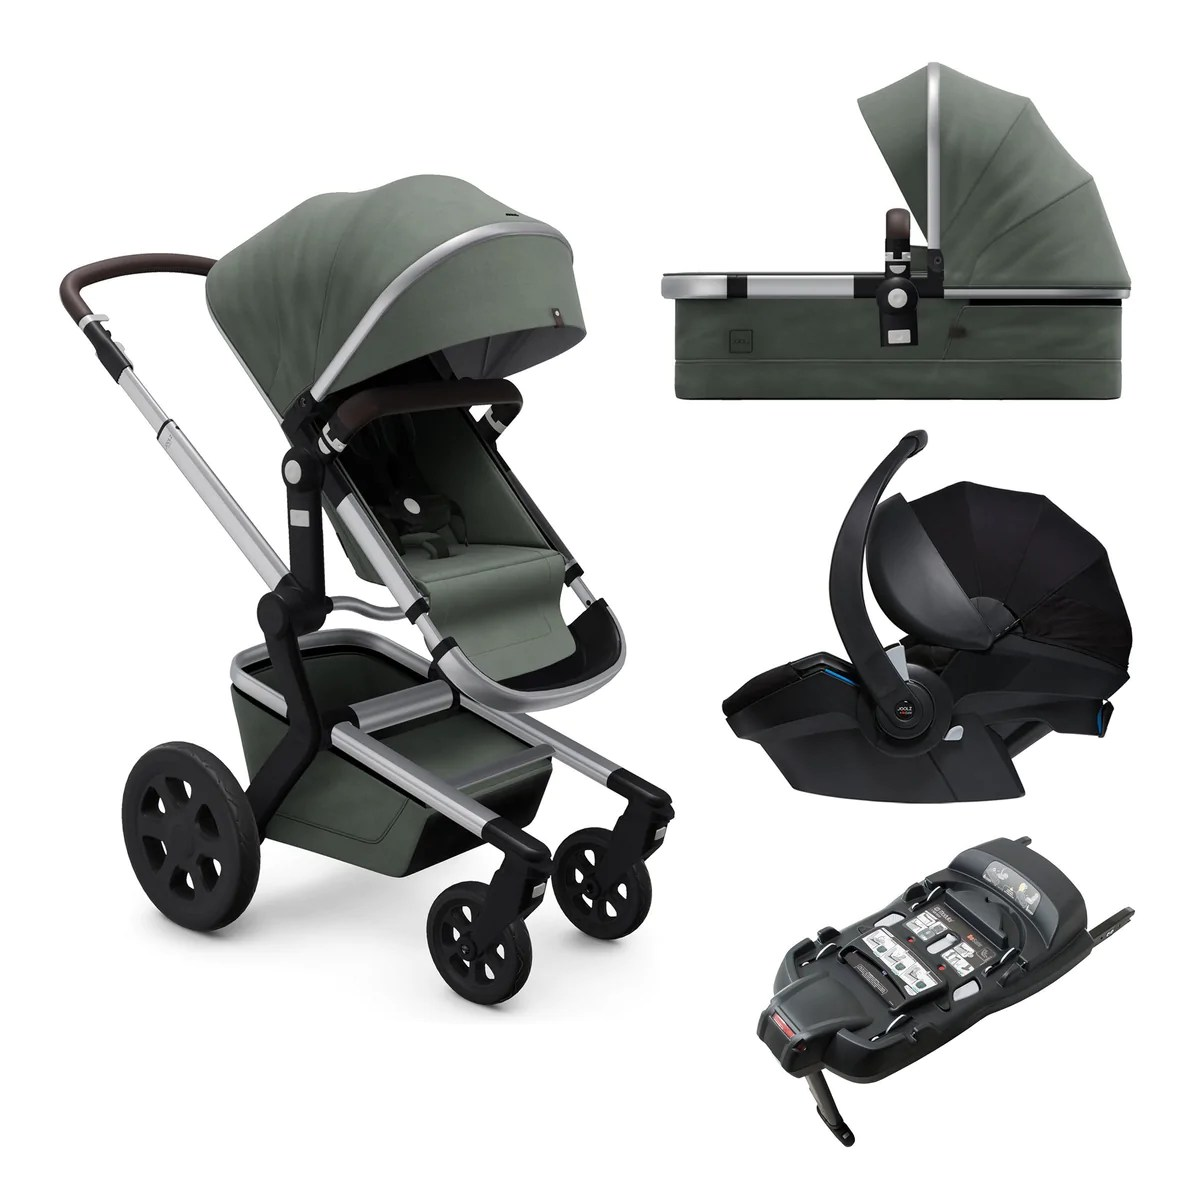 Joolz Buggy Board Uk Joolz Day 3 Travel System Marvellous Green